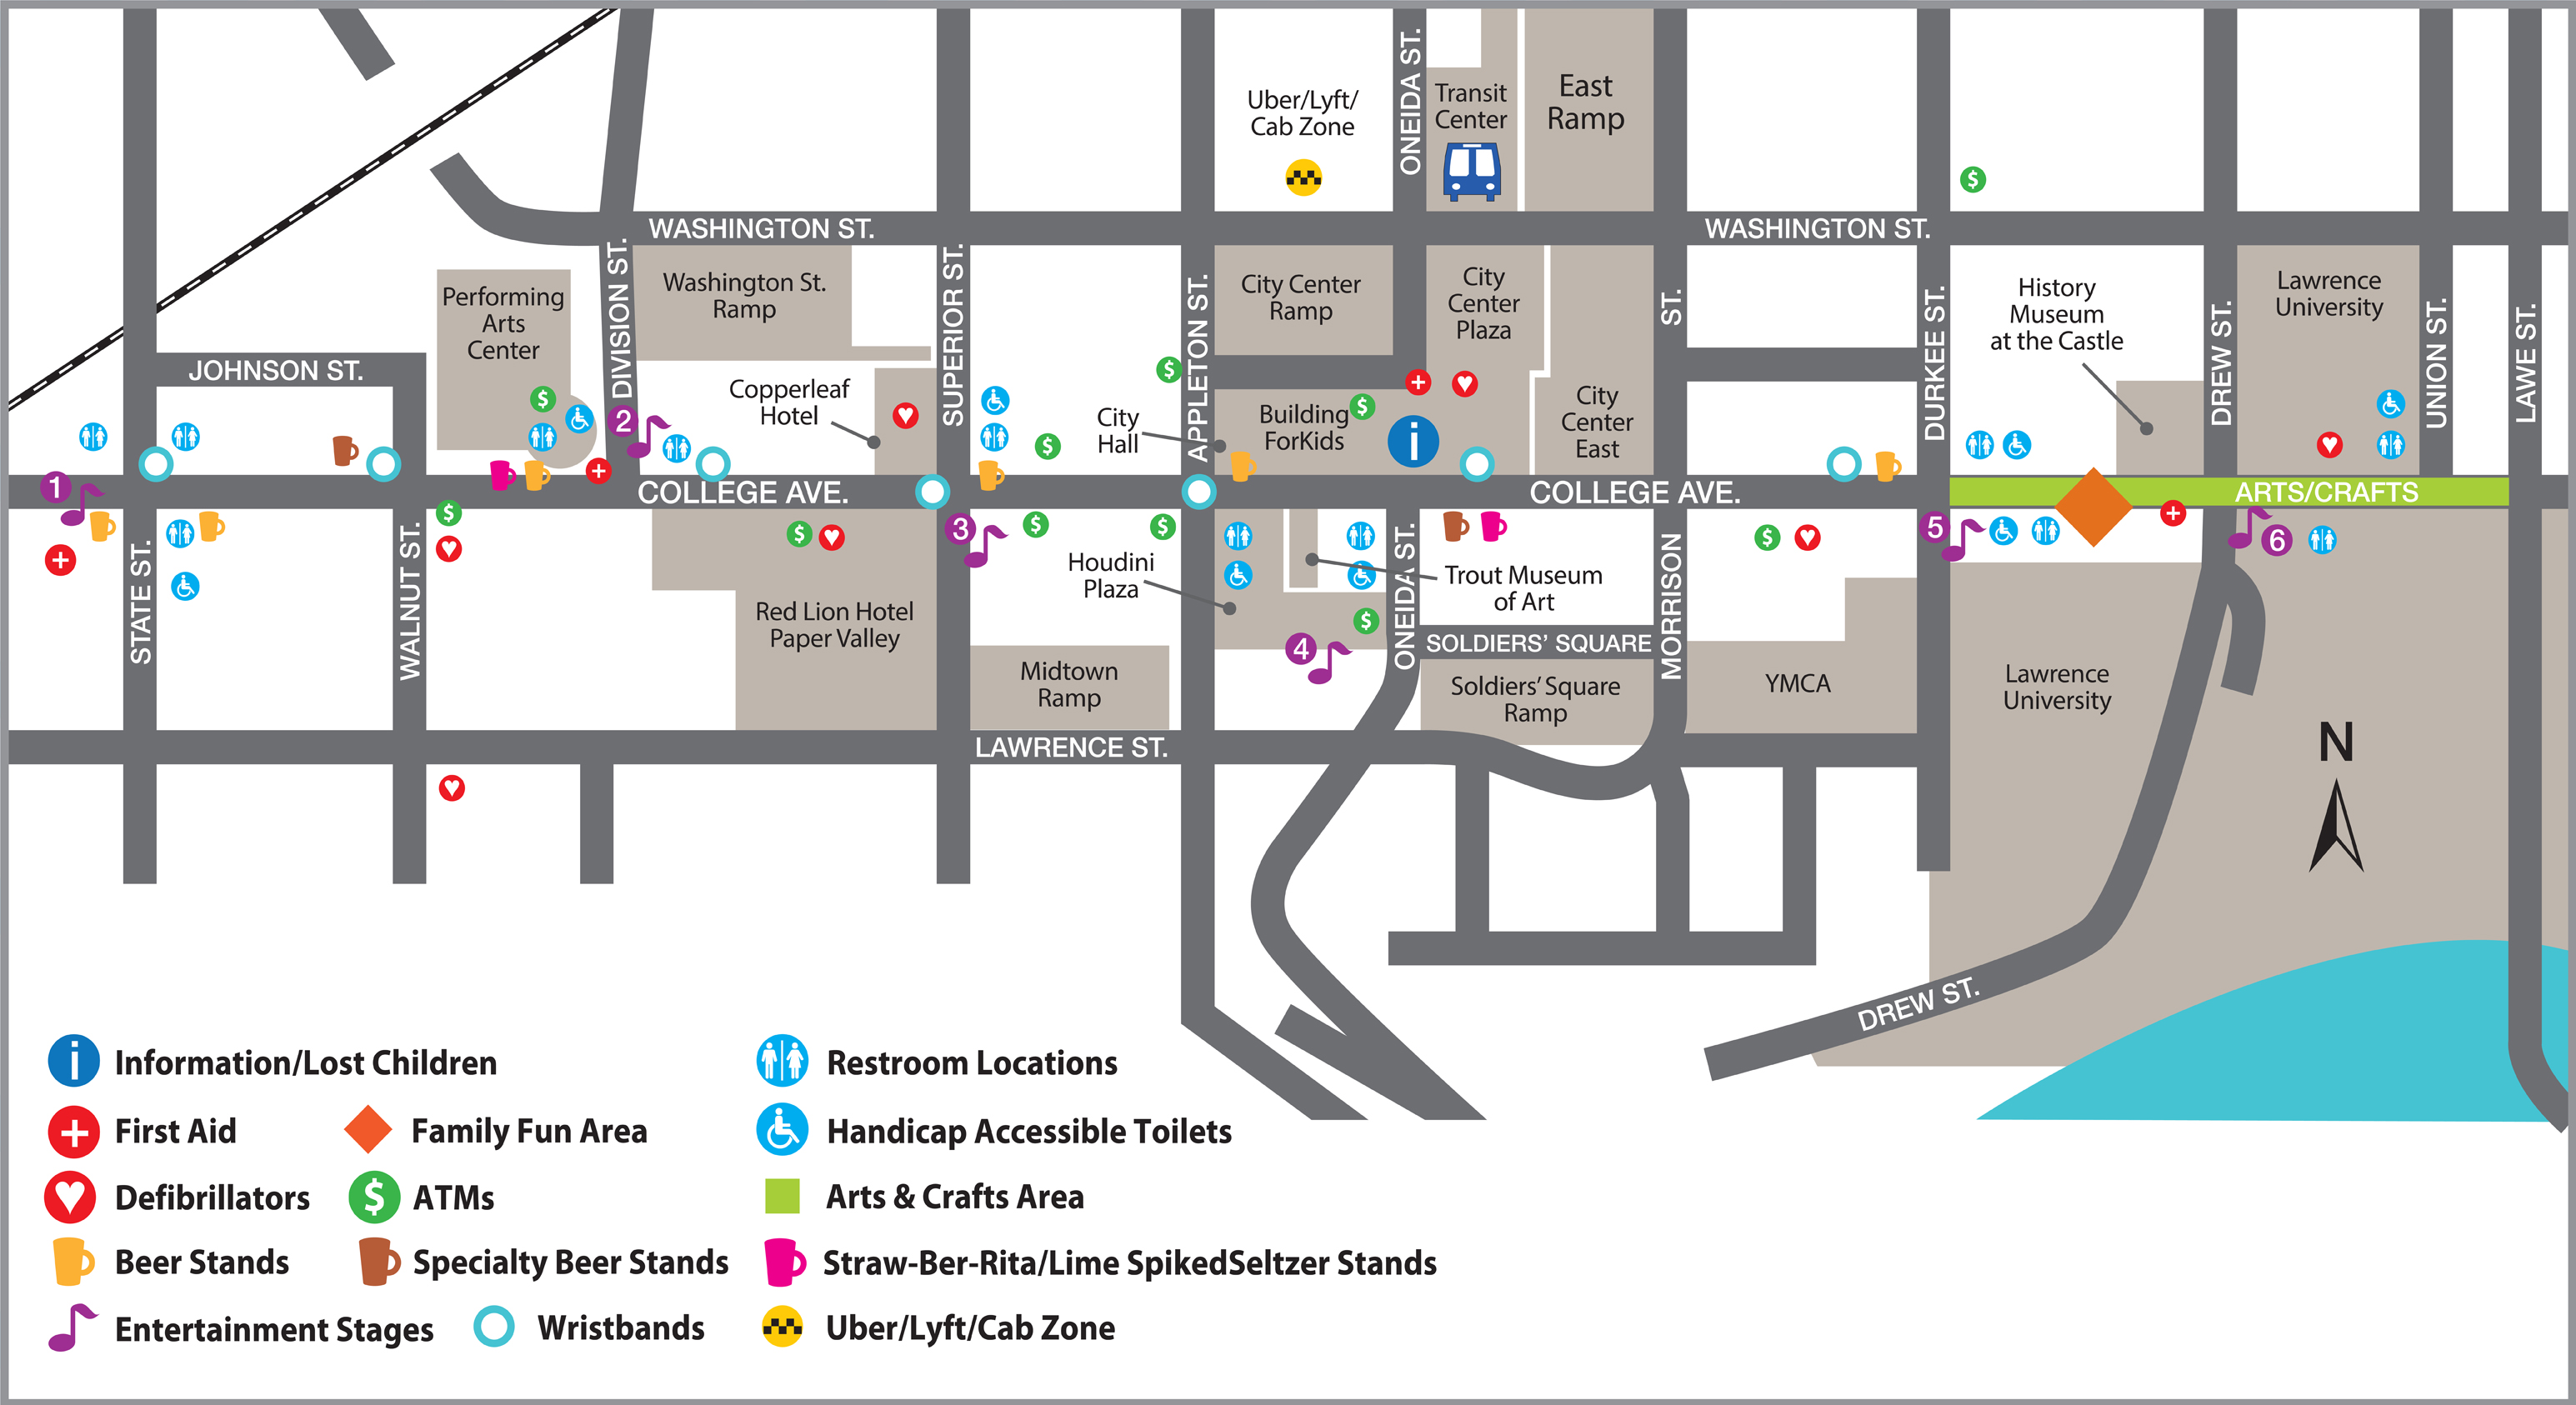 map of paris tourist attractions, map puzzles, map art, map services, map design, on craft college map